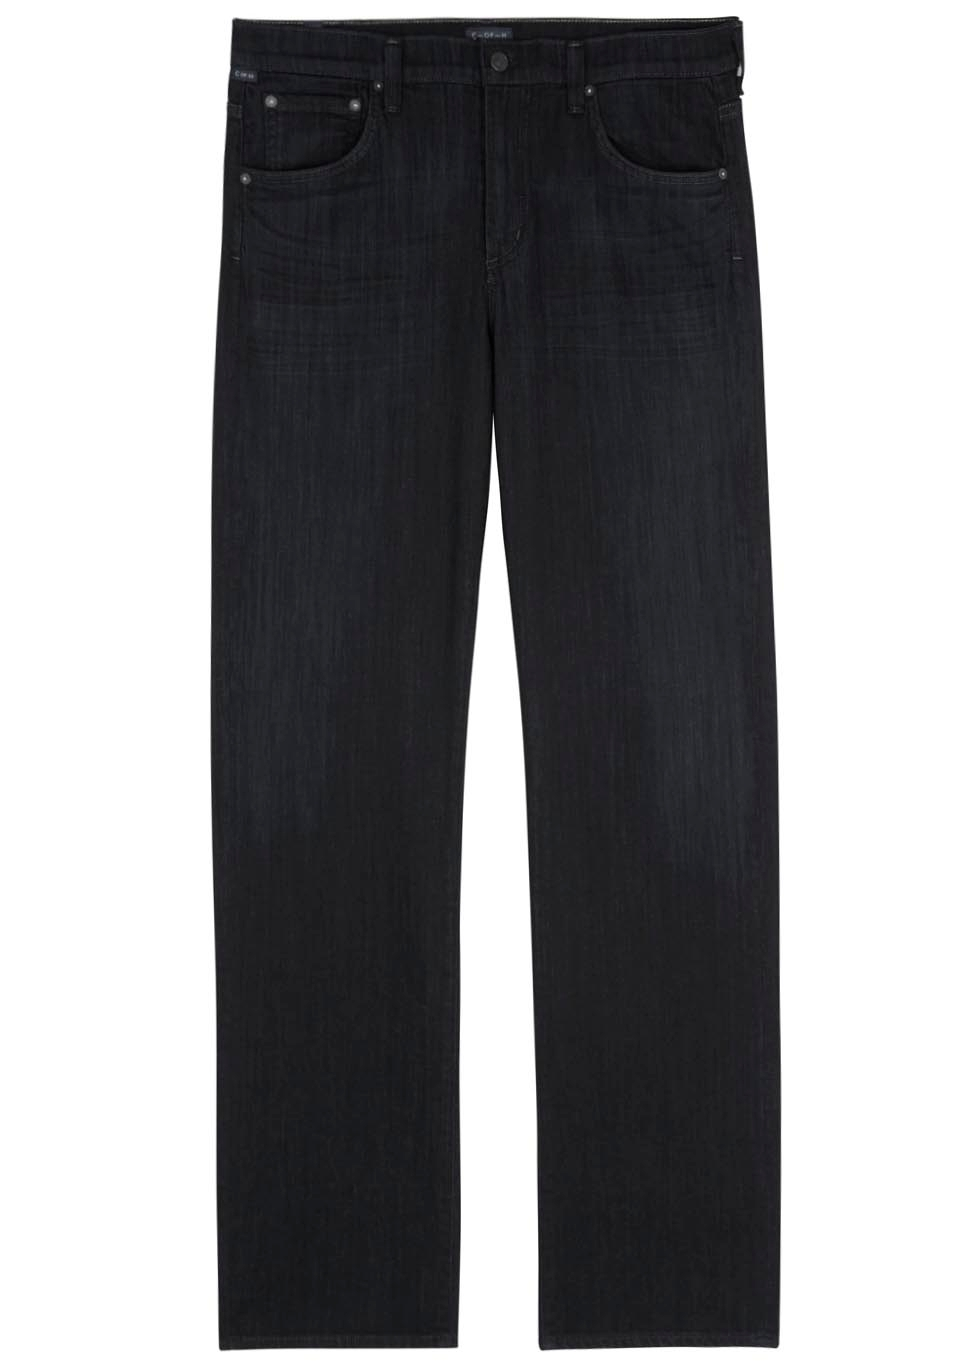 Sid midnight blue straight-leg jeans - Citizens of Humanity